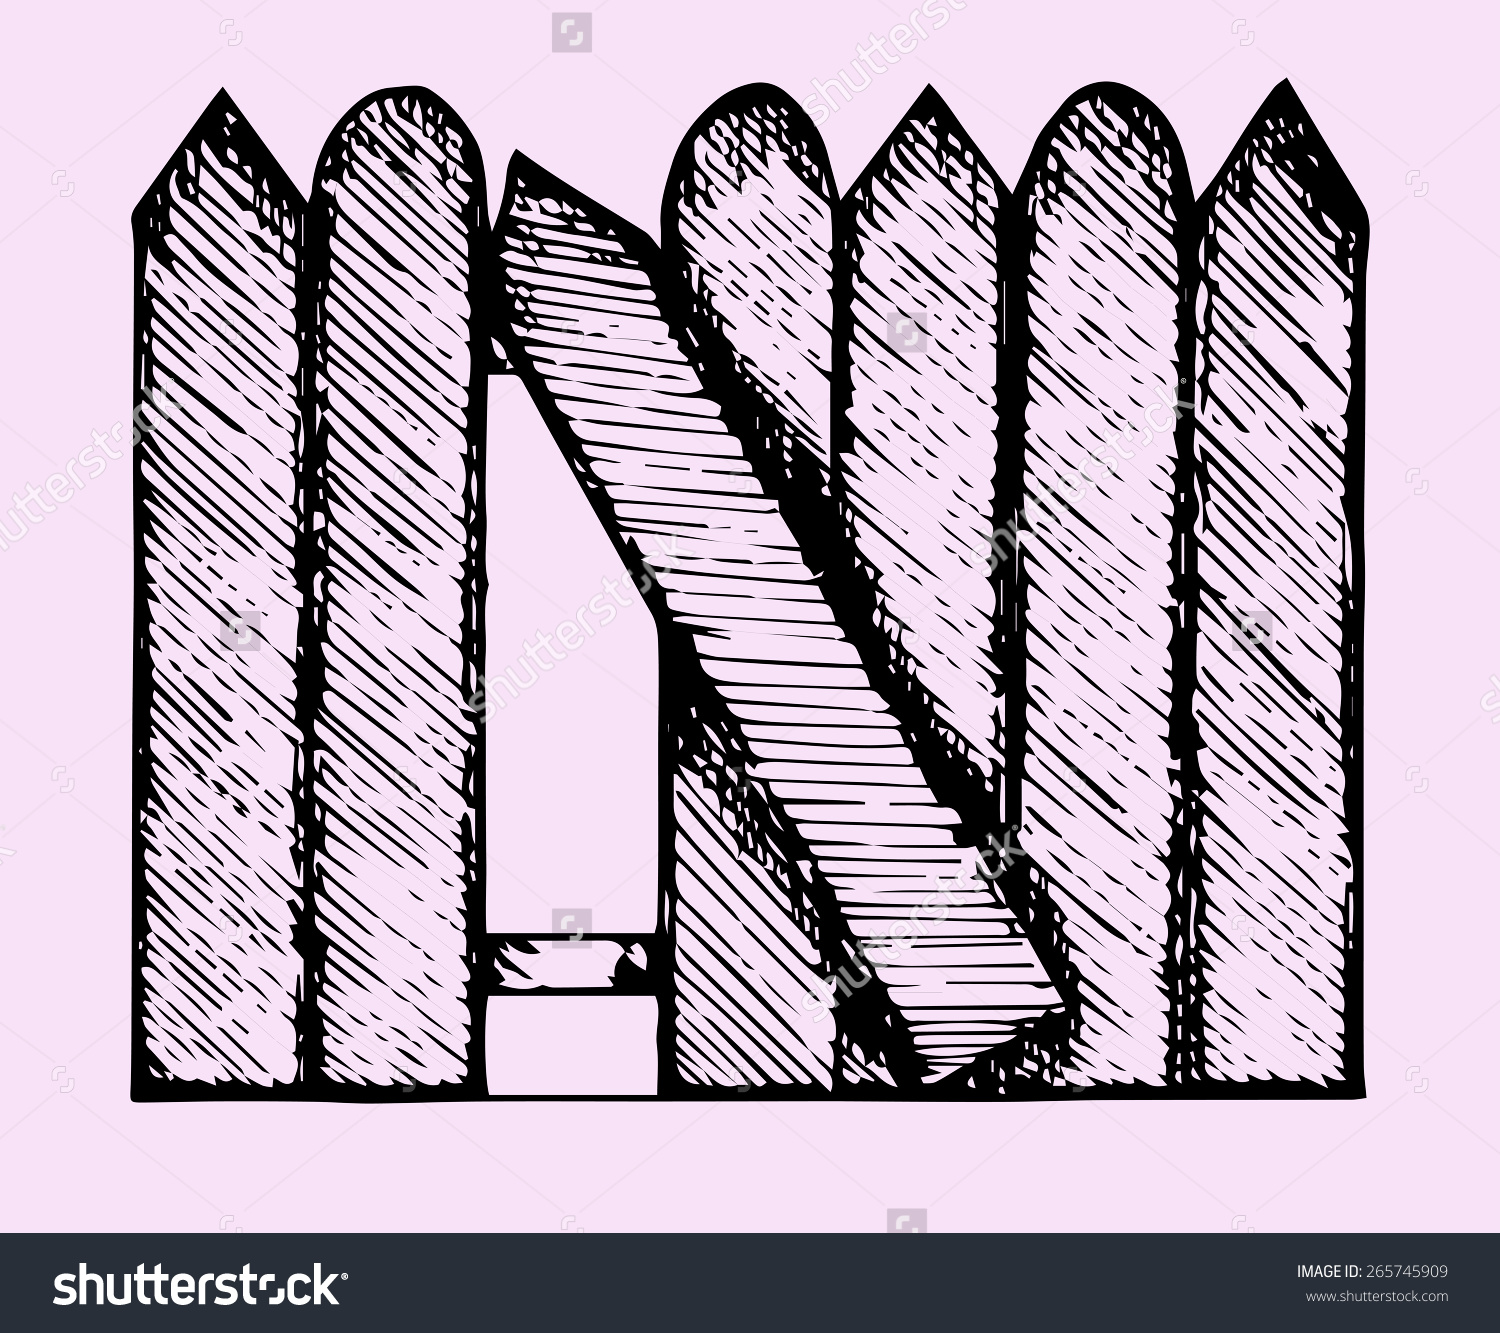 Broken Fence Doodle Style Sketch Illustration Stock Vector.